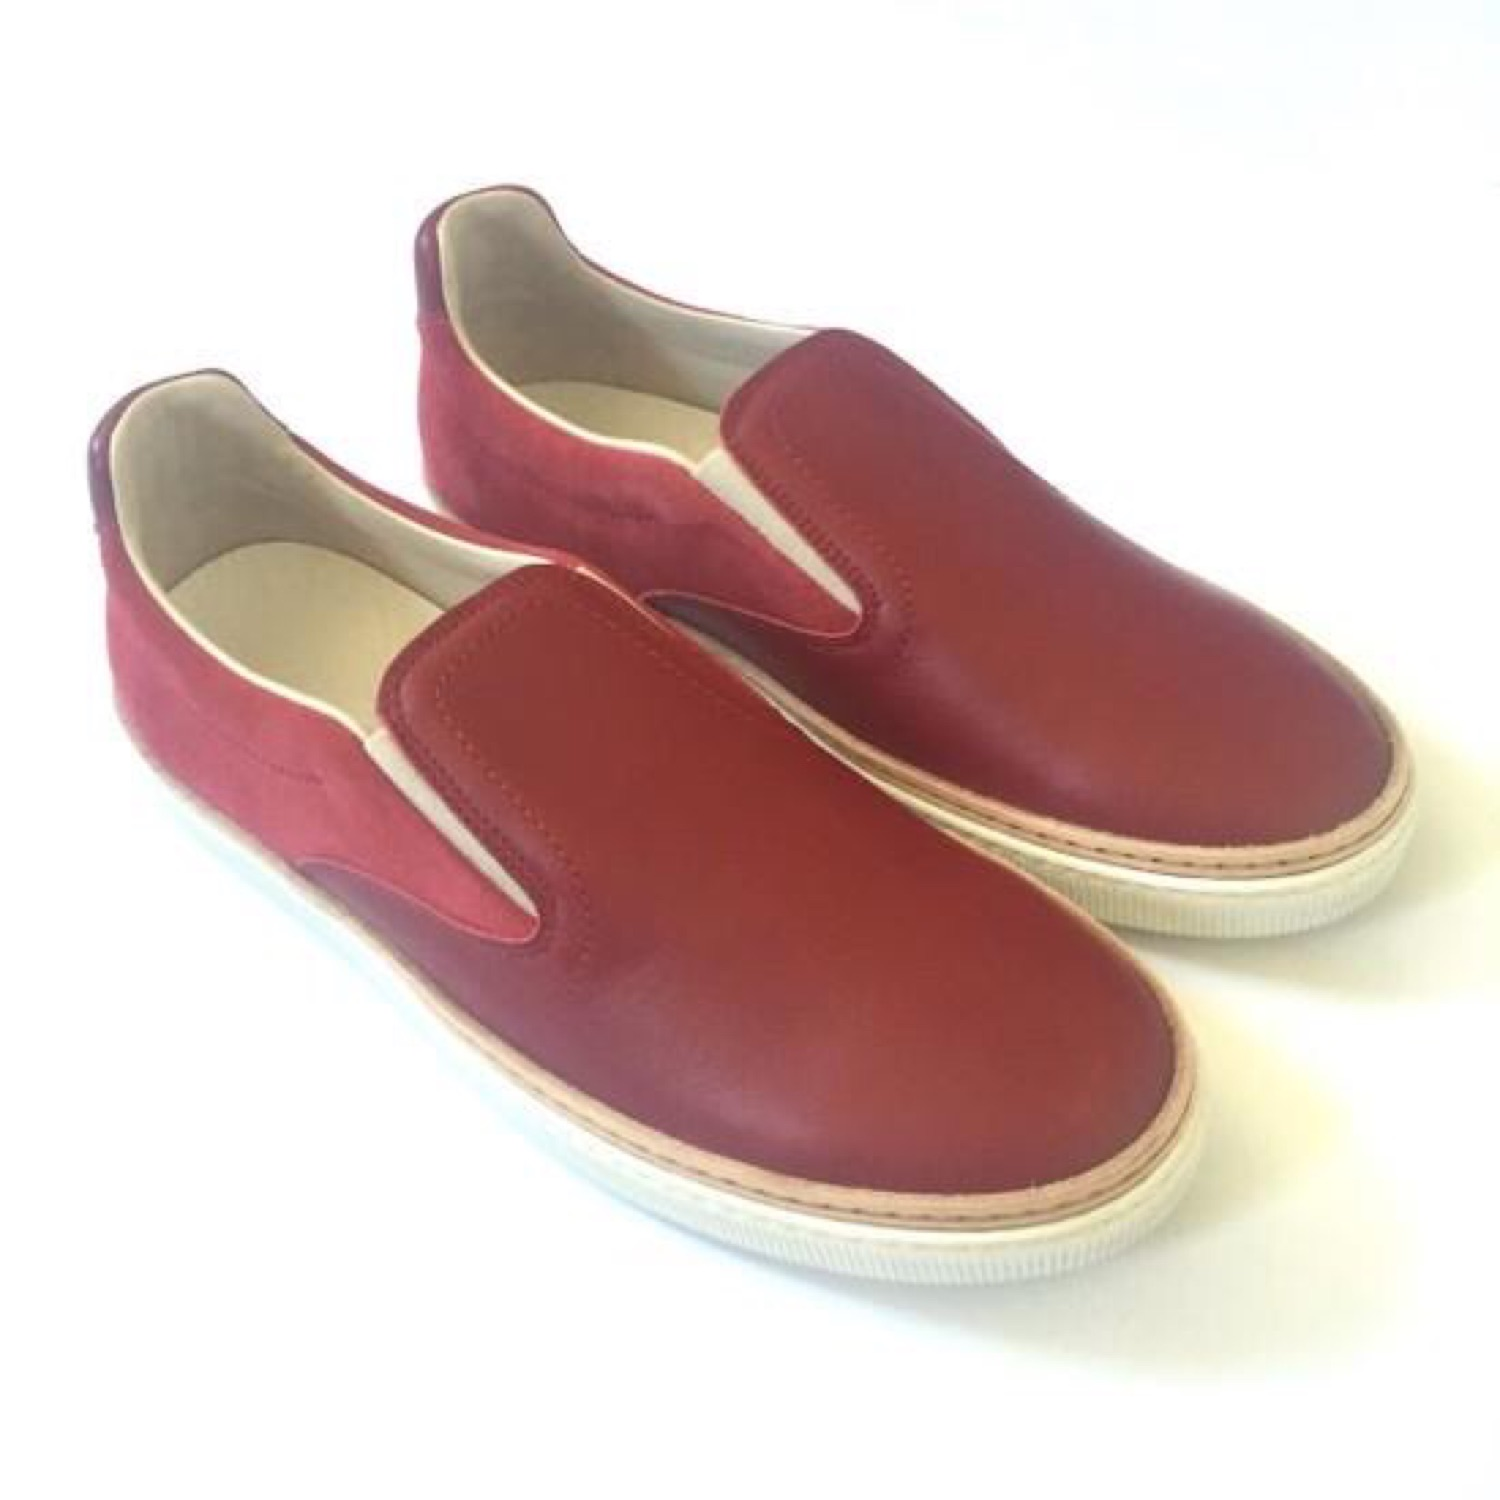 Maison Margiela Red Leather Slip On Sneakers Nwt